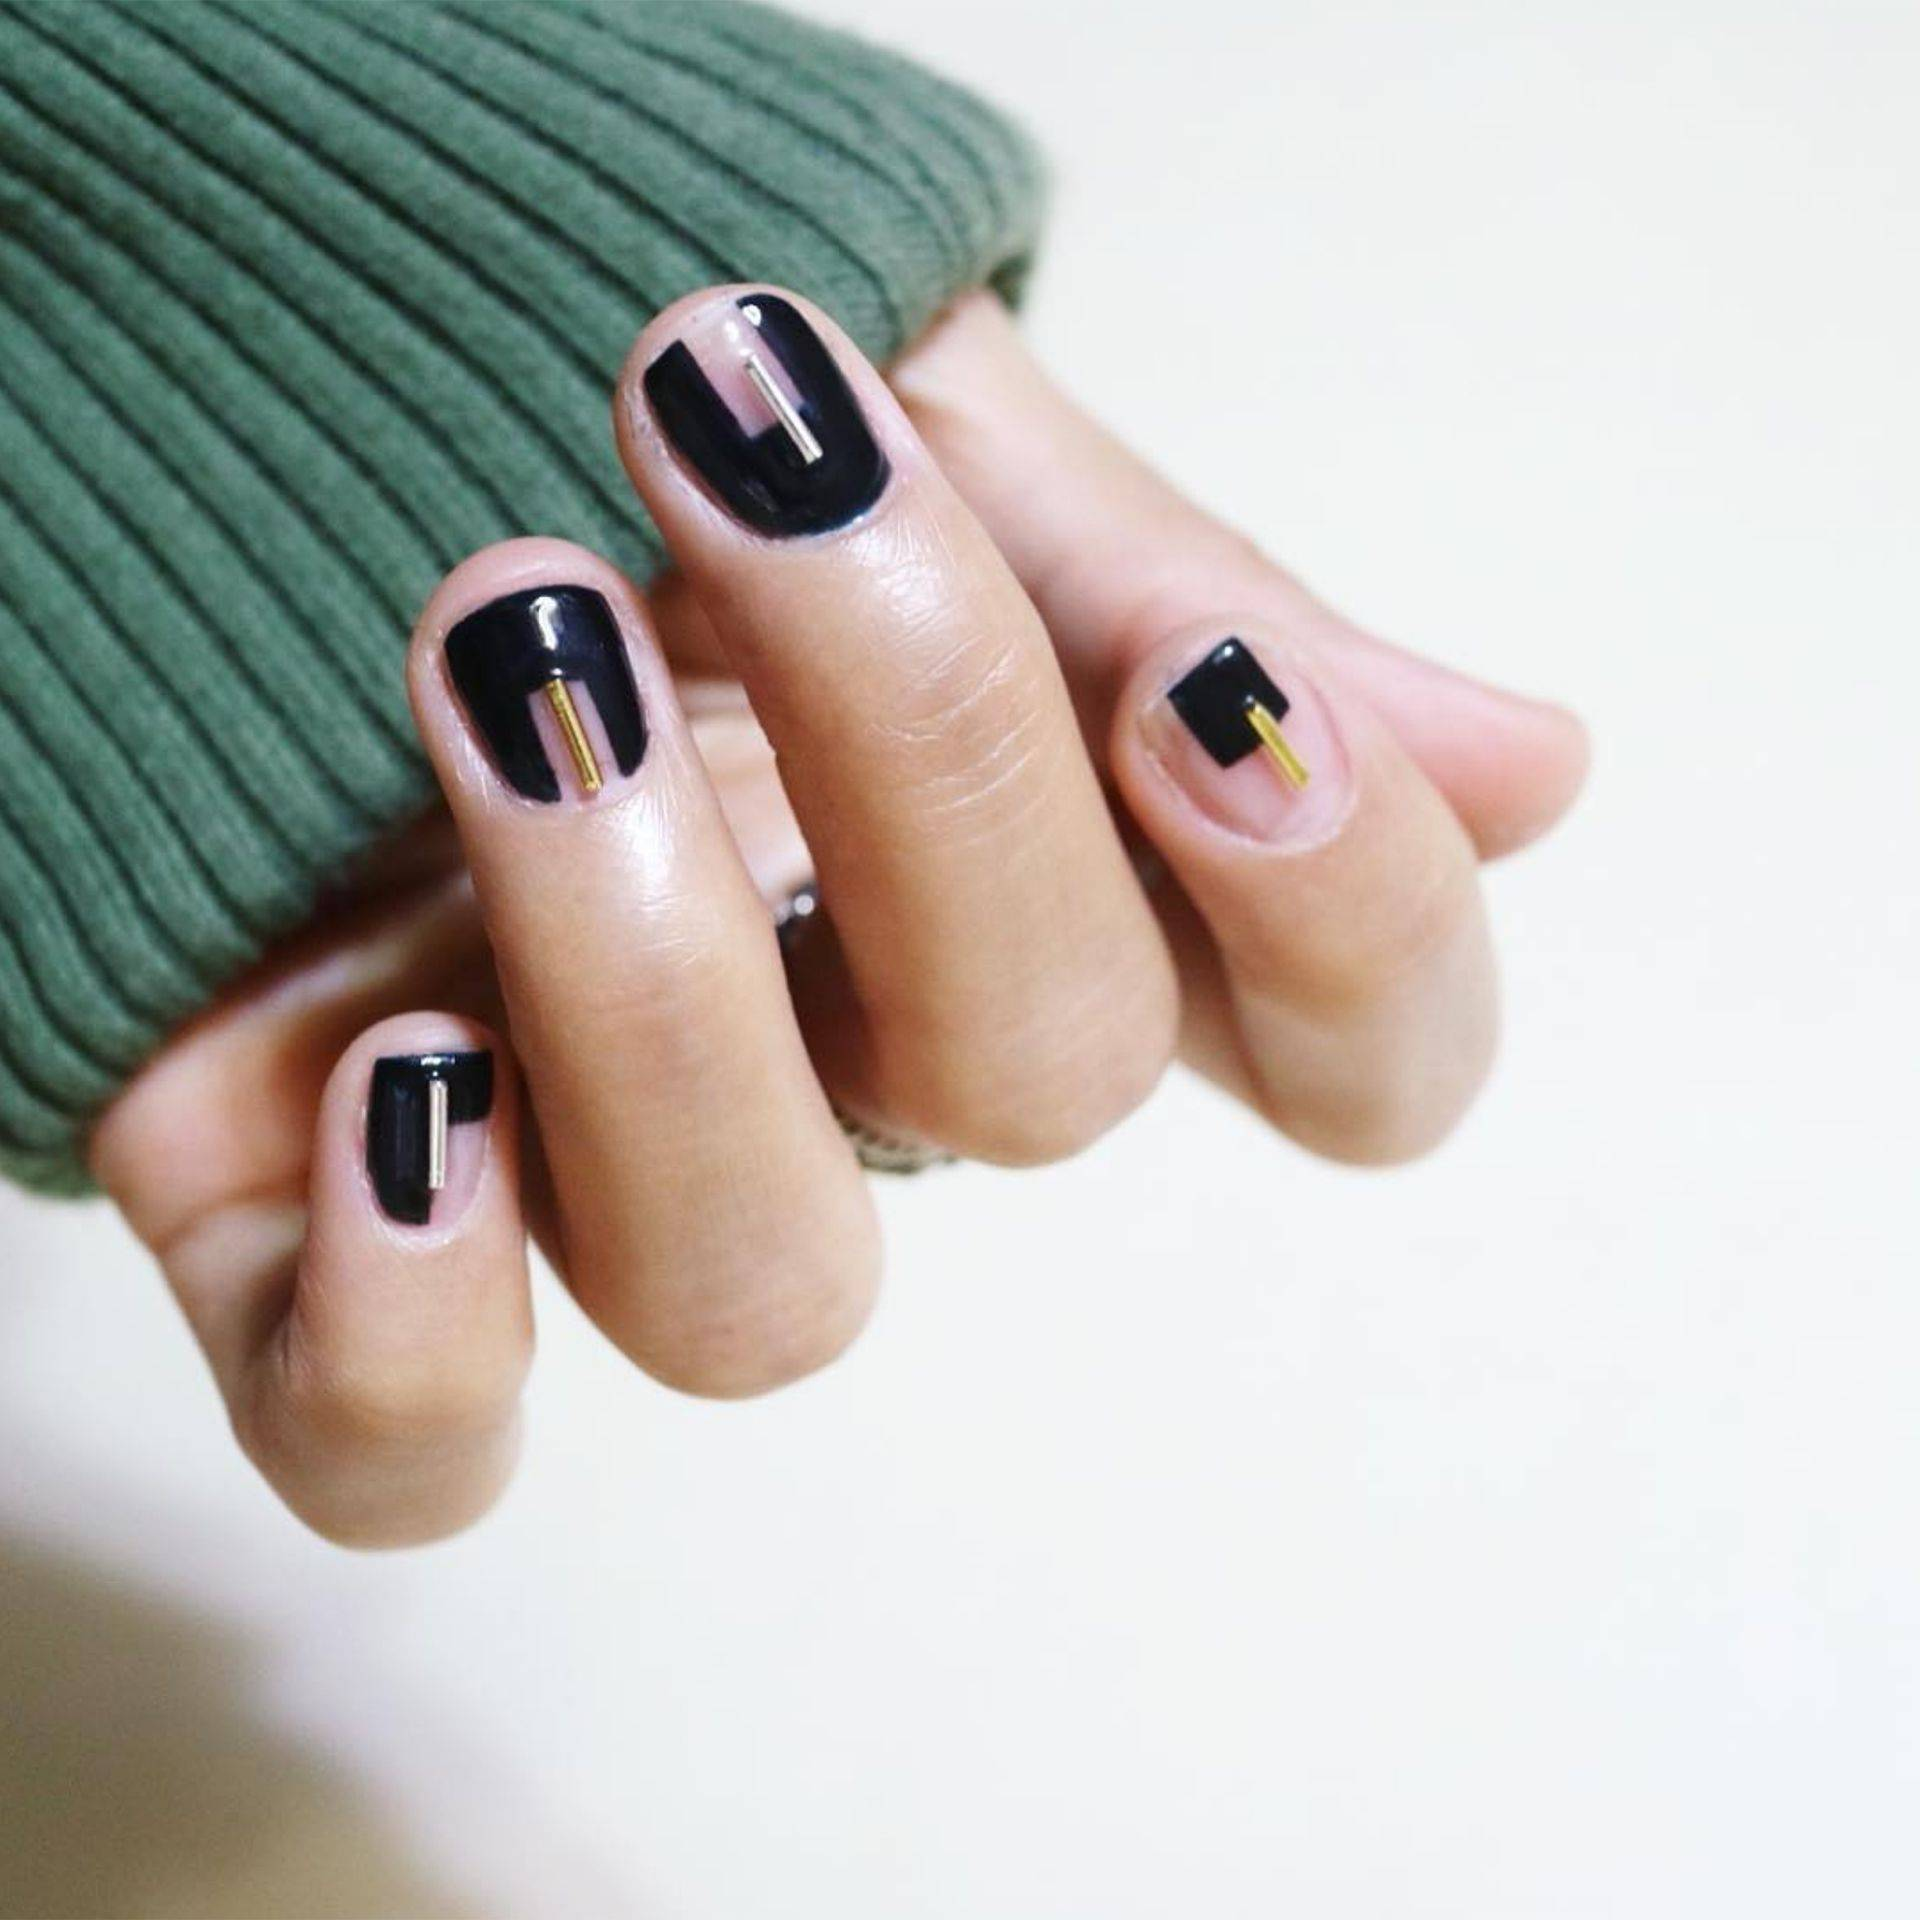 Korean Nail Art - Nail Designs & Pictures from Instagram | Glamour UK